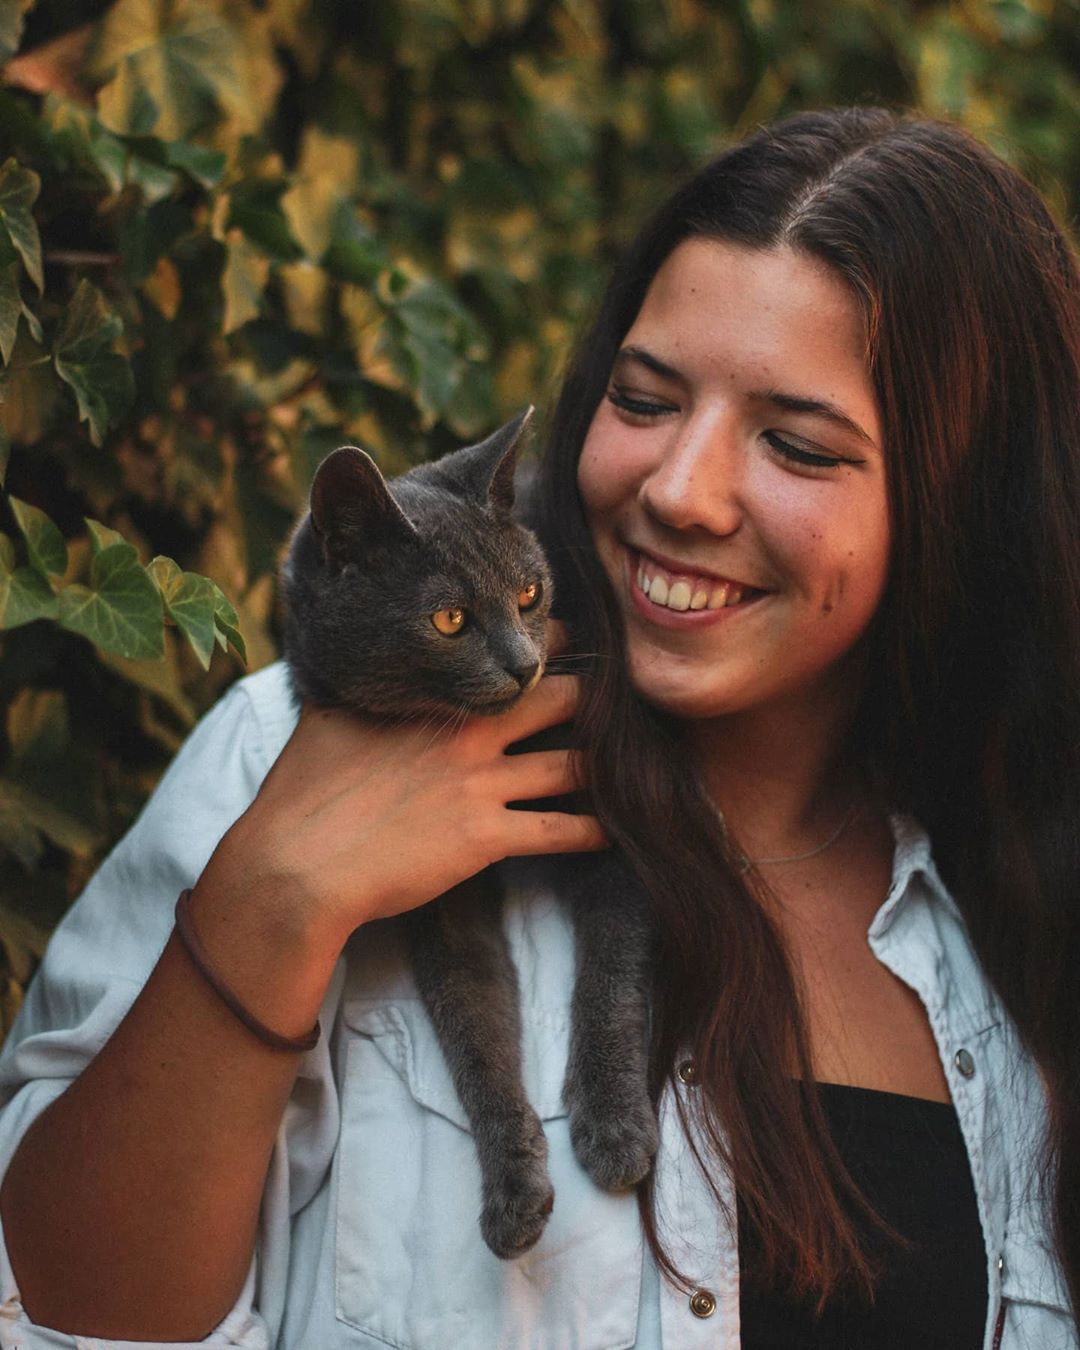 Hello everyone! ☺️ It is good to be back! I know I promised pics from a #dog #photoshoot and those are on the way too! But Petra and her #adorable #cat Dante were just way too #cute and I really wanted to #show you guys 🥰 I'll try to #focus more on #photography, but school is very #eventful and hard for me right now... wish me #luck 😅 #girl #model #canonphotography #mood #aesthetic #beginnerphotographer #amateurphotographer #instaphoto #pet #friend #portraits #portraitphotography #love #dslr #